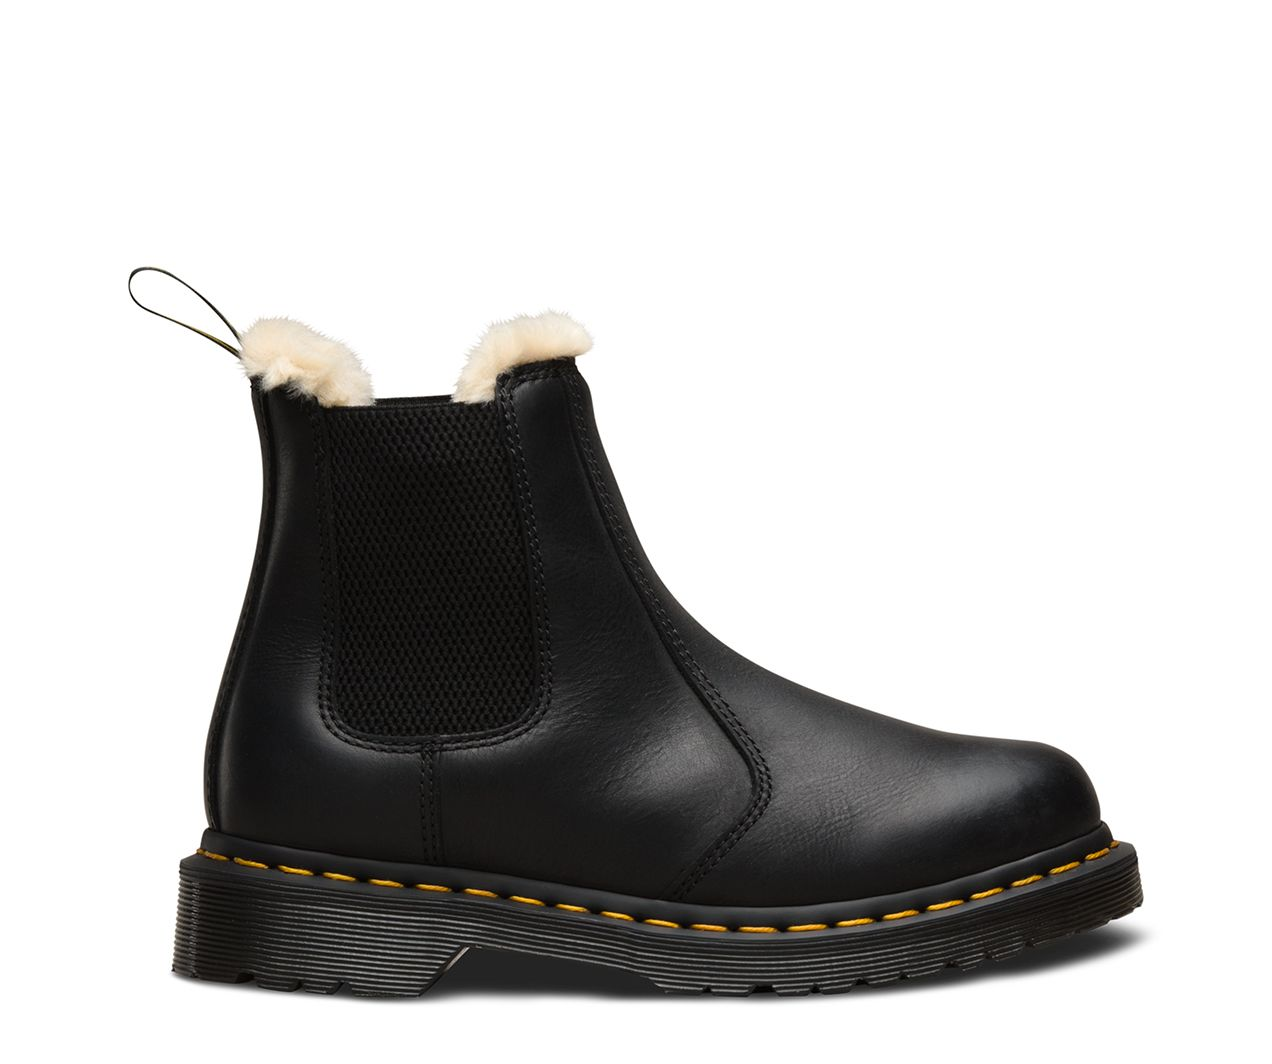 Dr martens fur lined 2976 leonore wyoming chelsea boots in